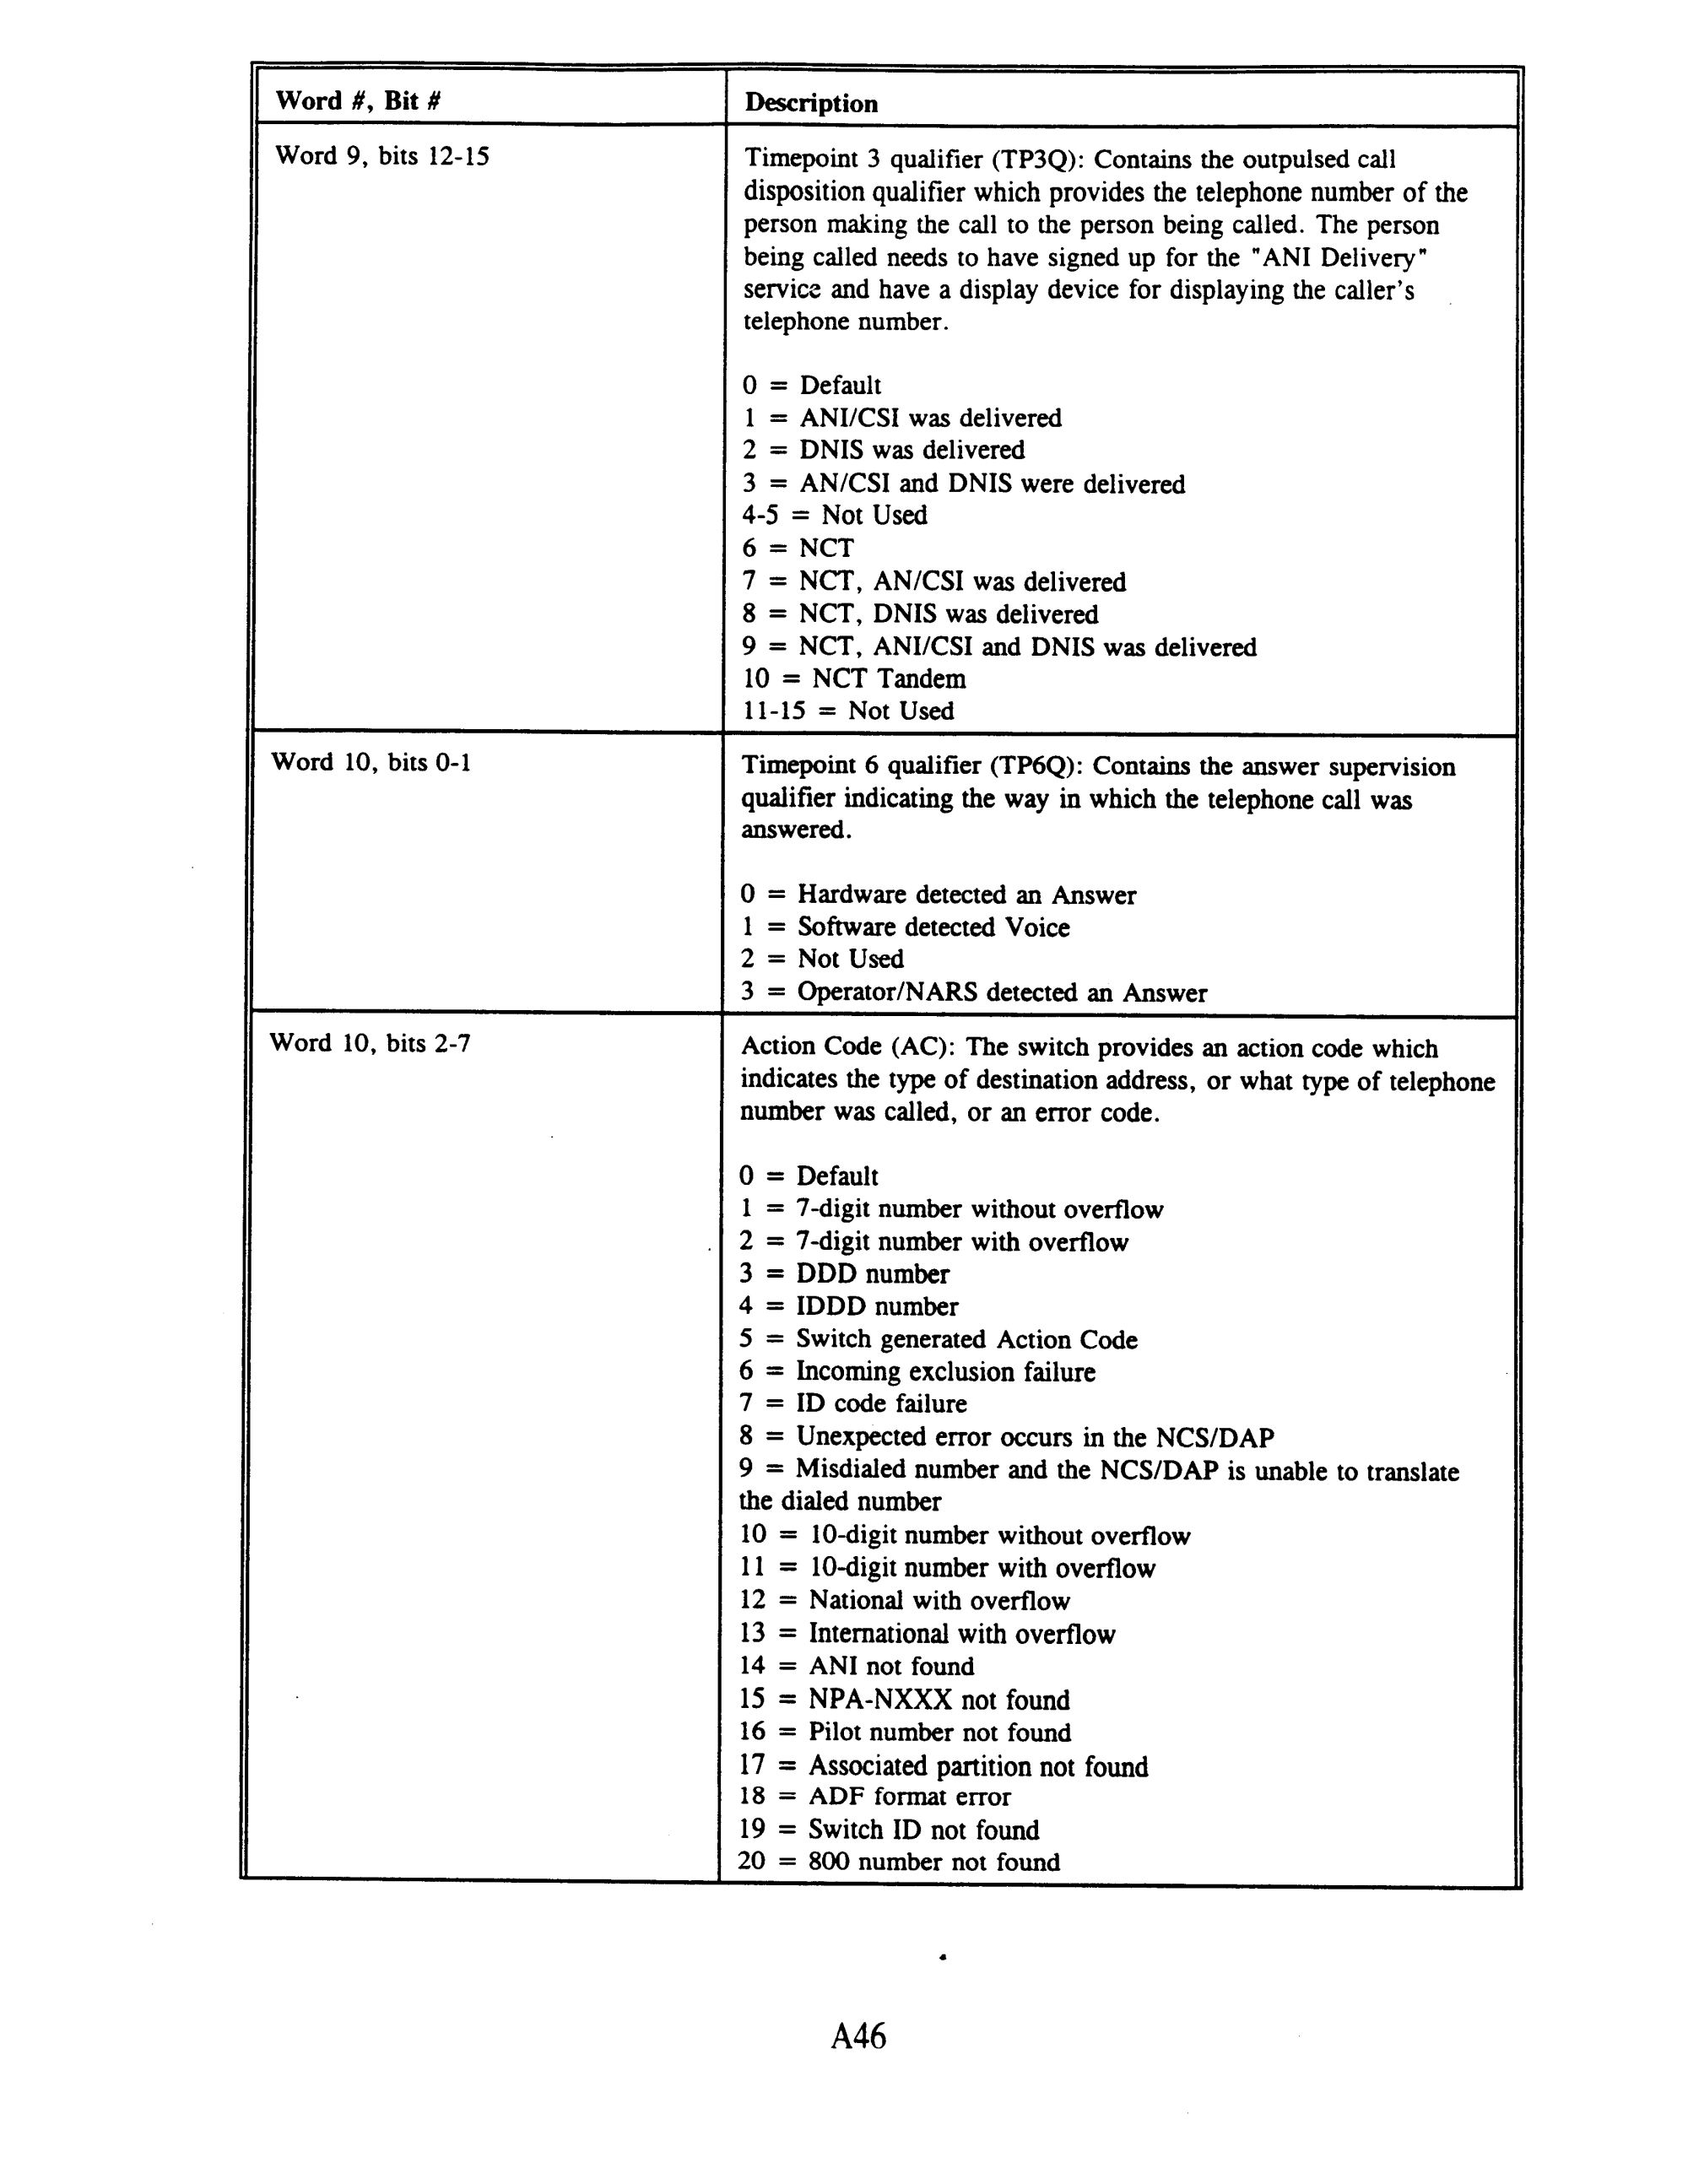 hight resolution of us6754181b1 system and method for a directory service supporting a telephone wiring block terminal 77a perrett communications ltd